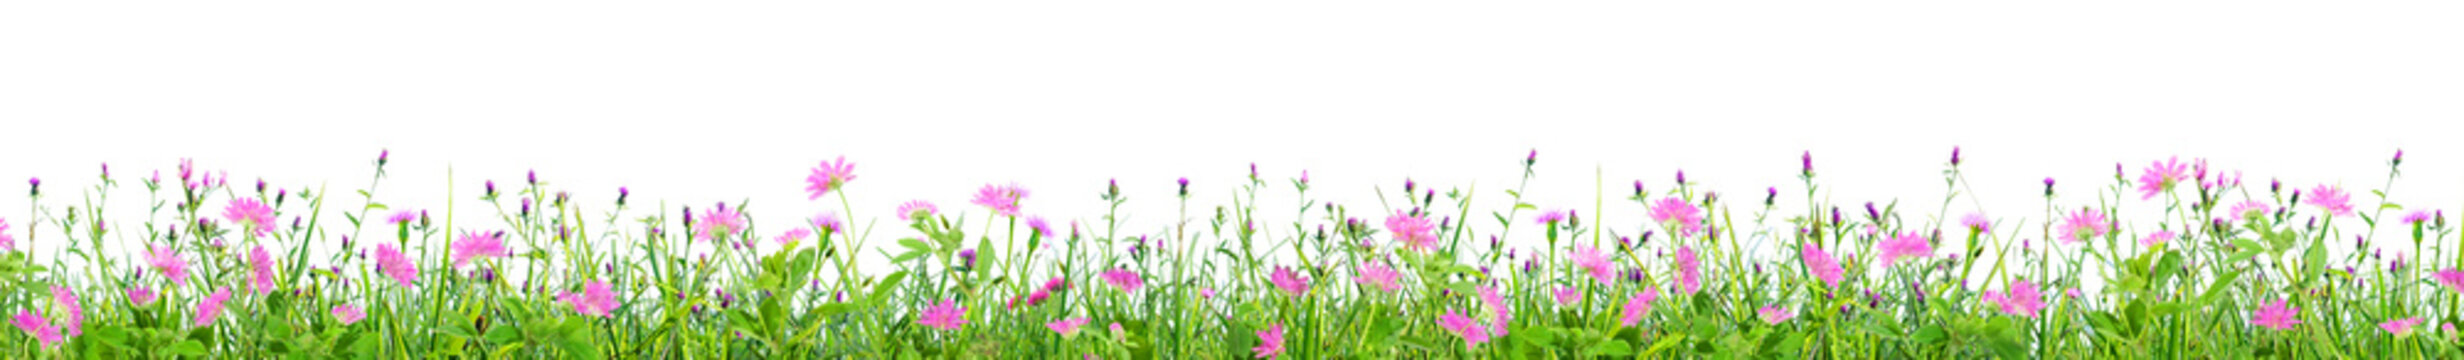 green grass and pink spring flowers isolated on white background